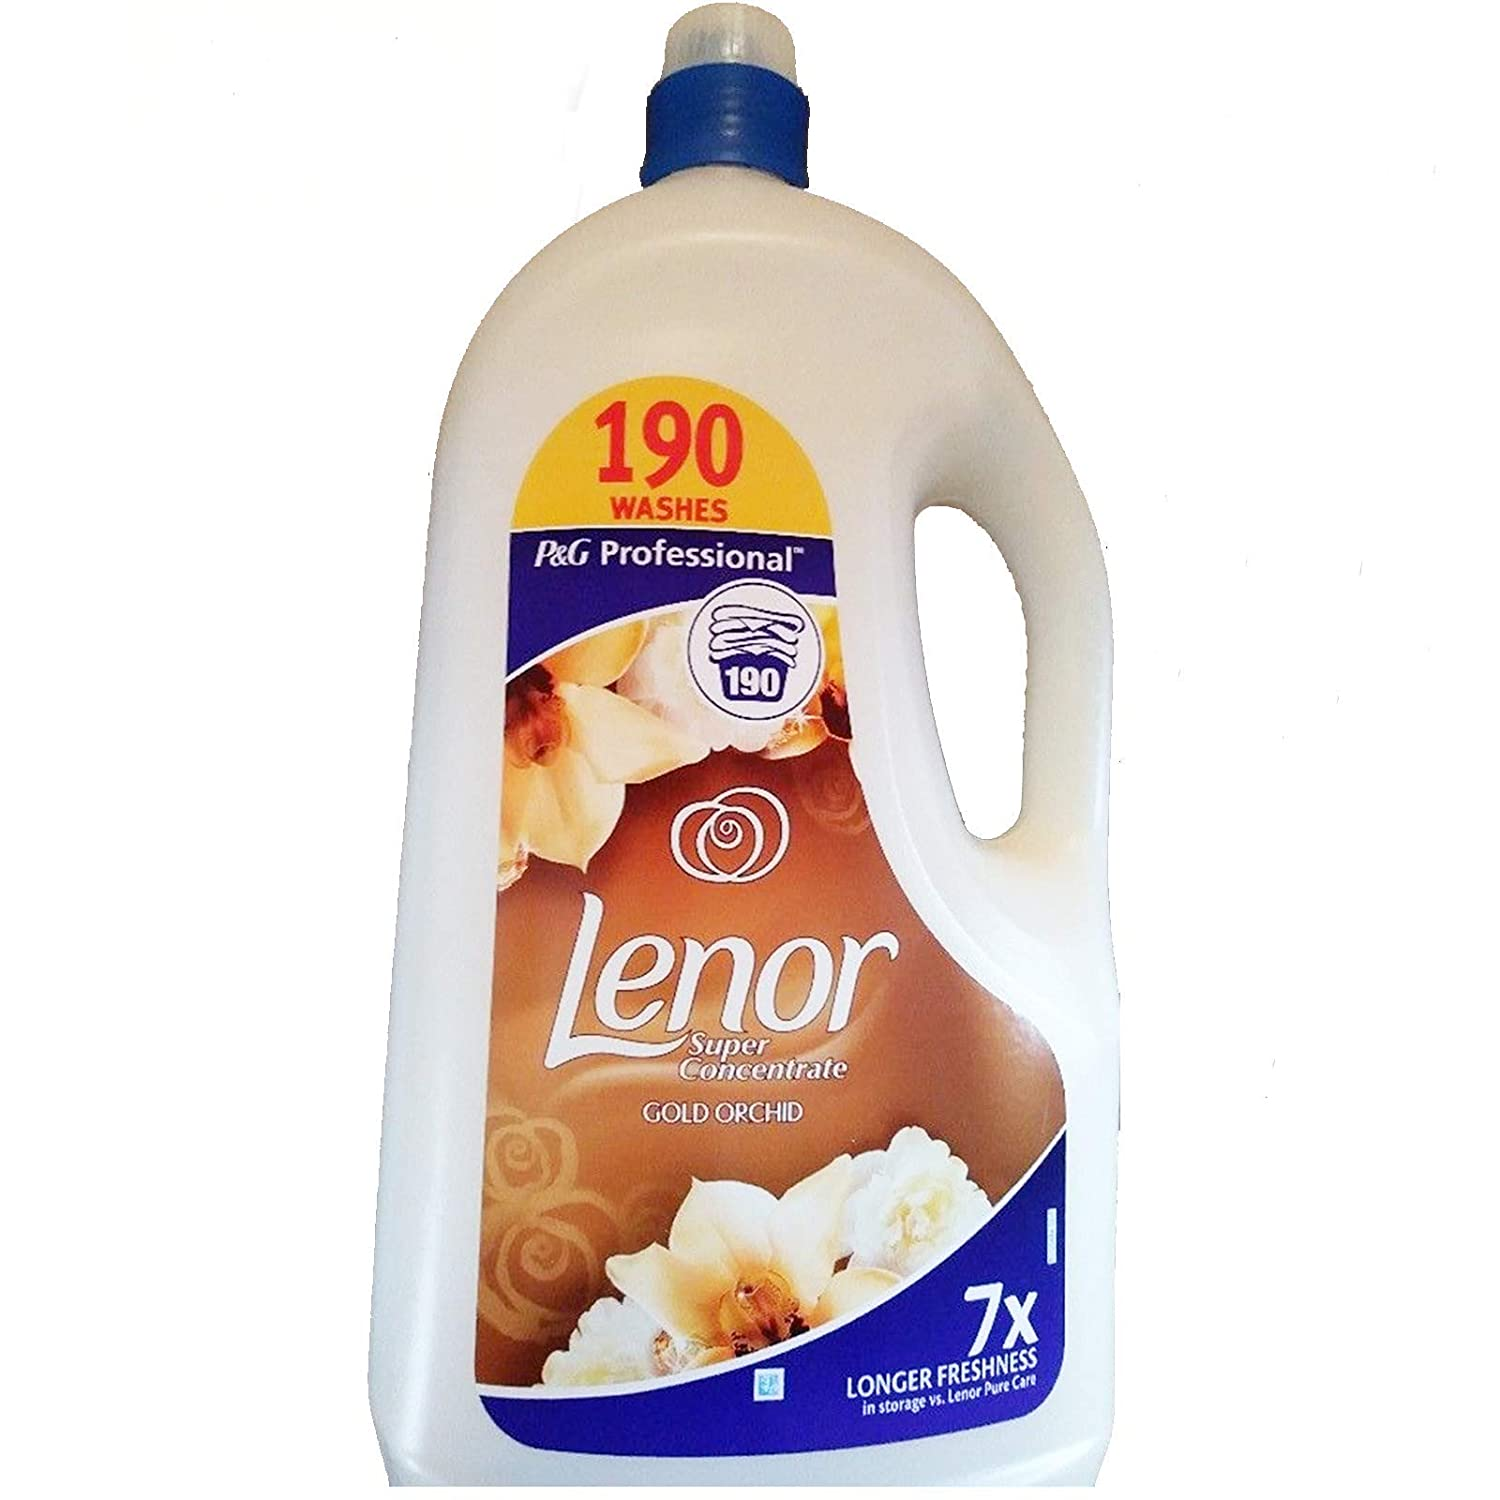 Lenor Super Concentrate Gold Orchid Fabric Conditioner 190 Washes 3.8L (2)